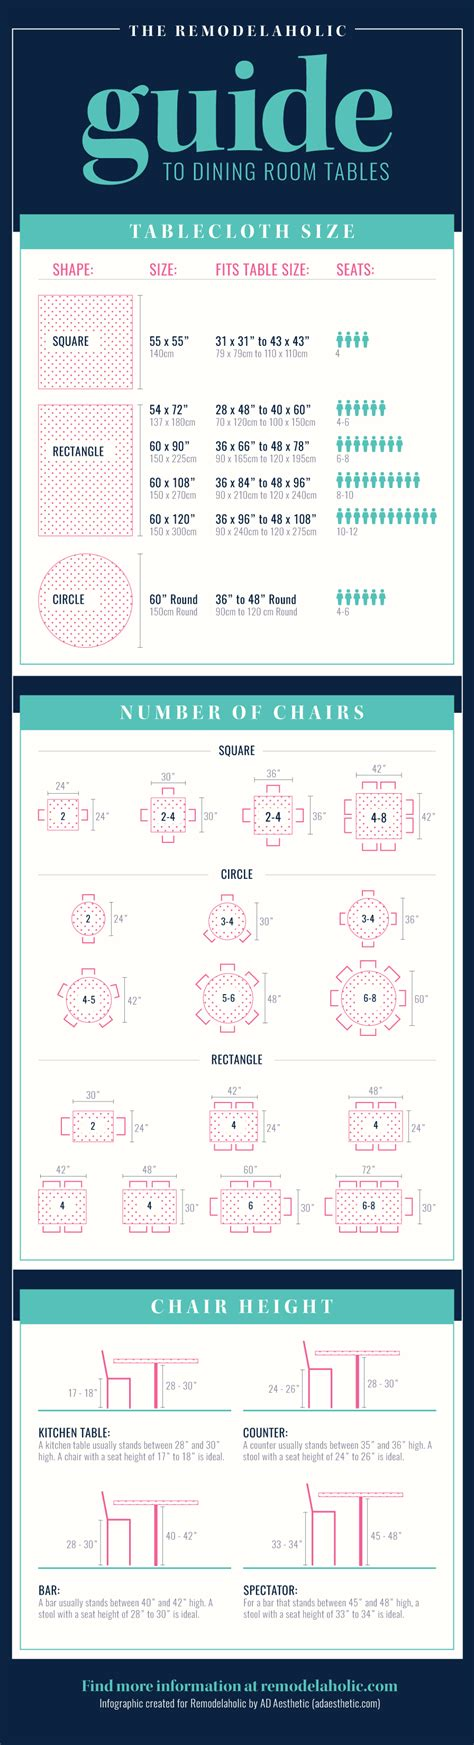 Dining Table Size Guide Remodelaholic The Remodelaholic Guide To Dining Table Sizes Seating Tablecloth Size And